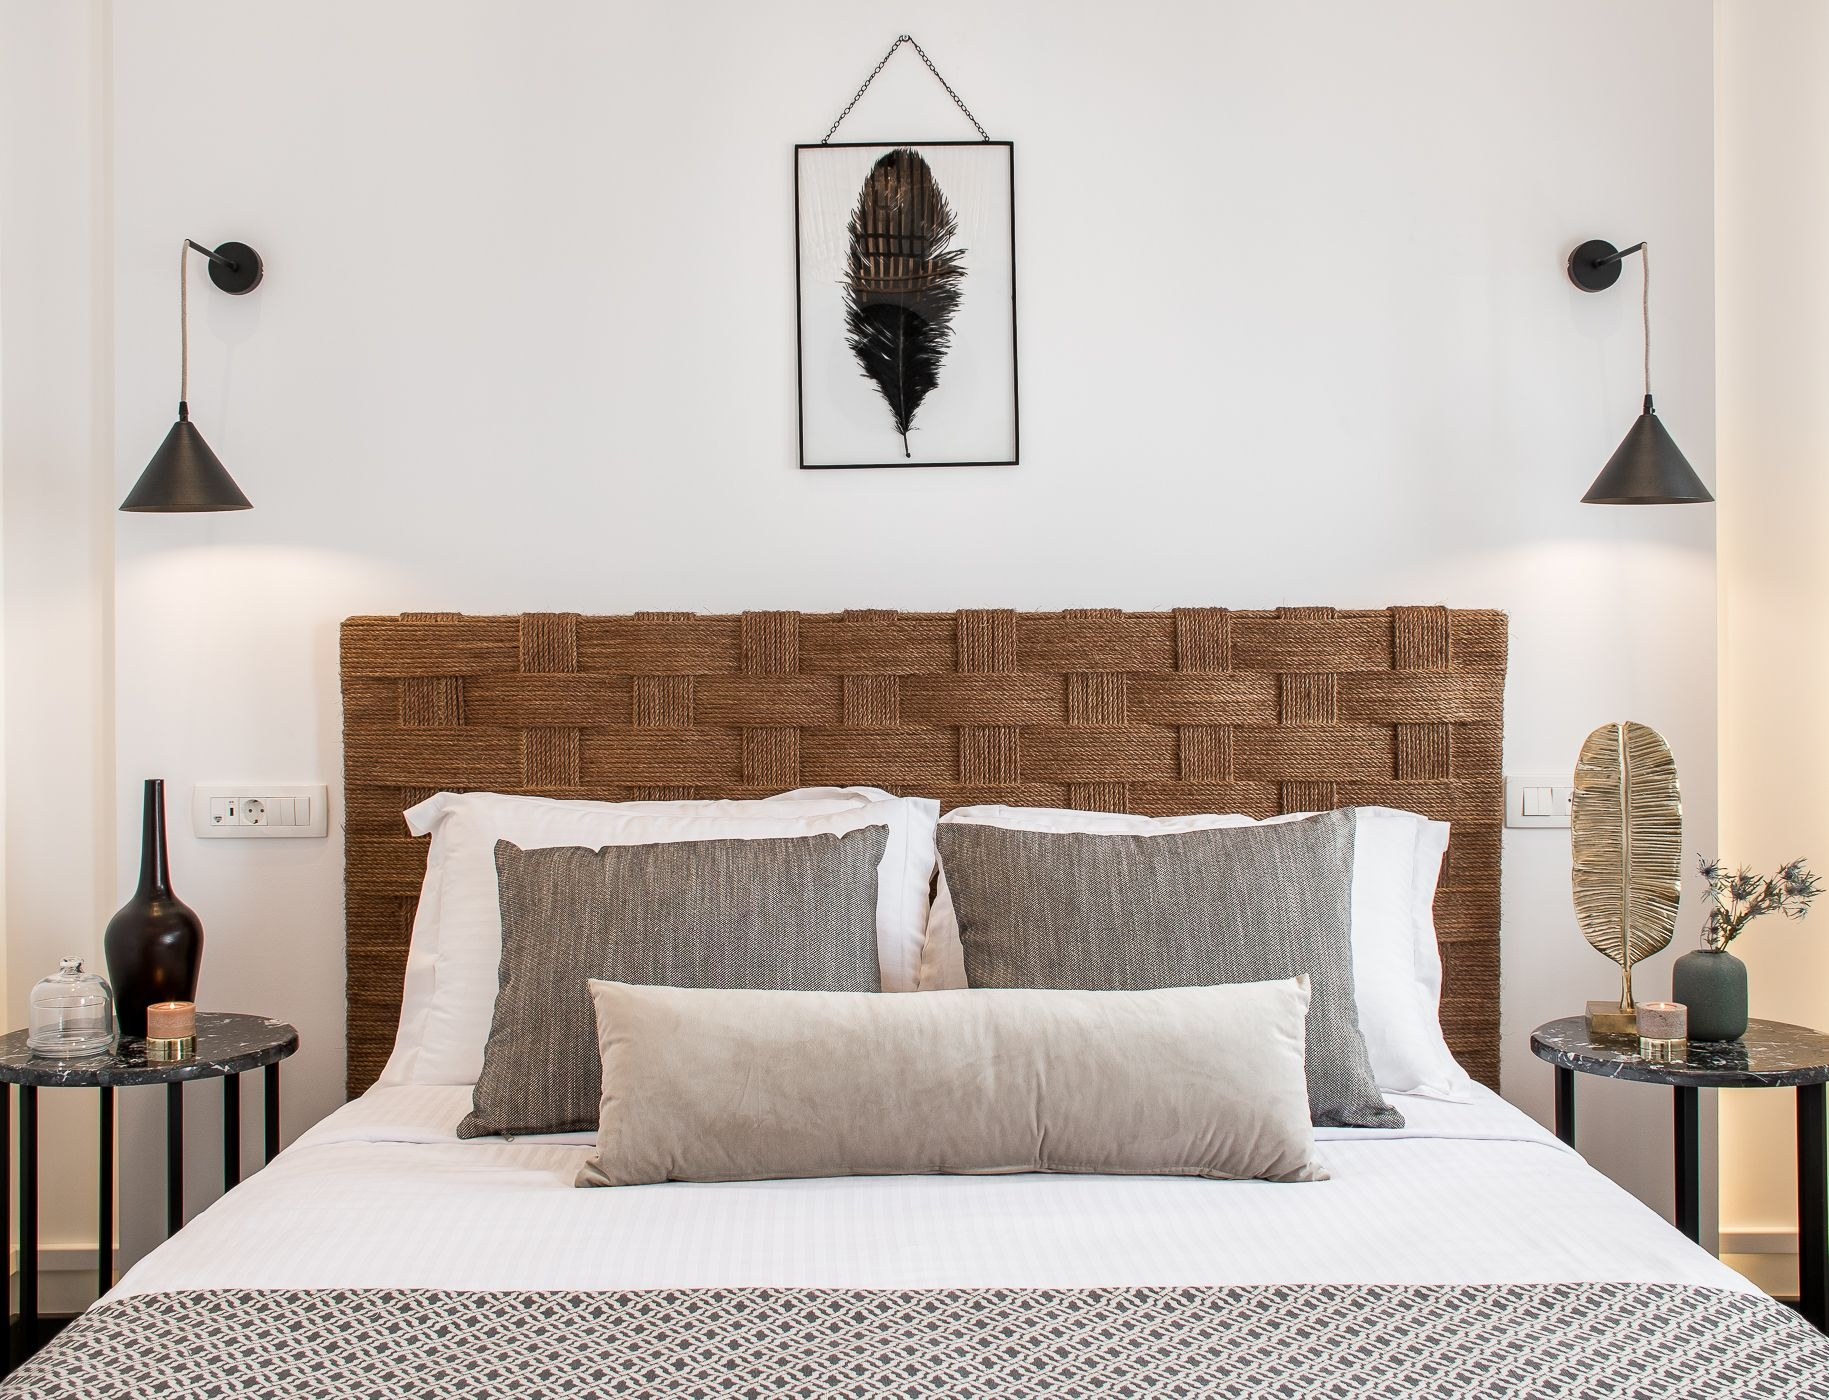 4* Amelot Art Suites Santorini - Σαντορίνη ? 2 Ημέρες (1 Διανυκτέρευση) ? 2 άτομα ? Πρωινό ? έως 31/10/2019 ? Free WiFi